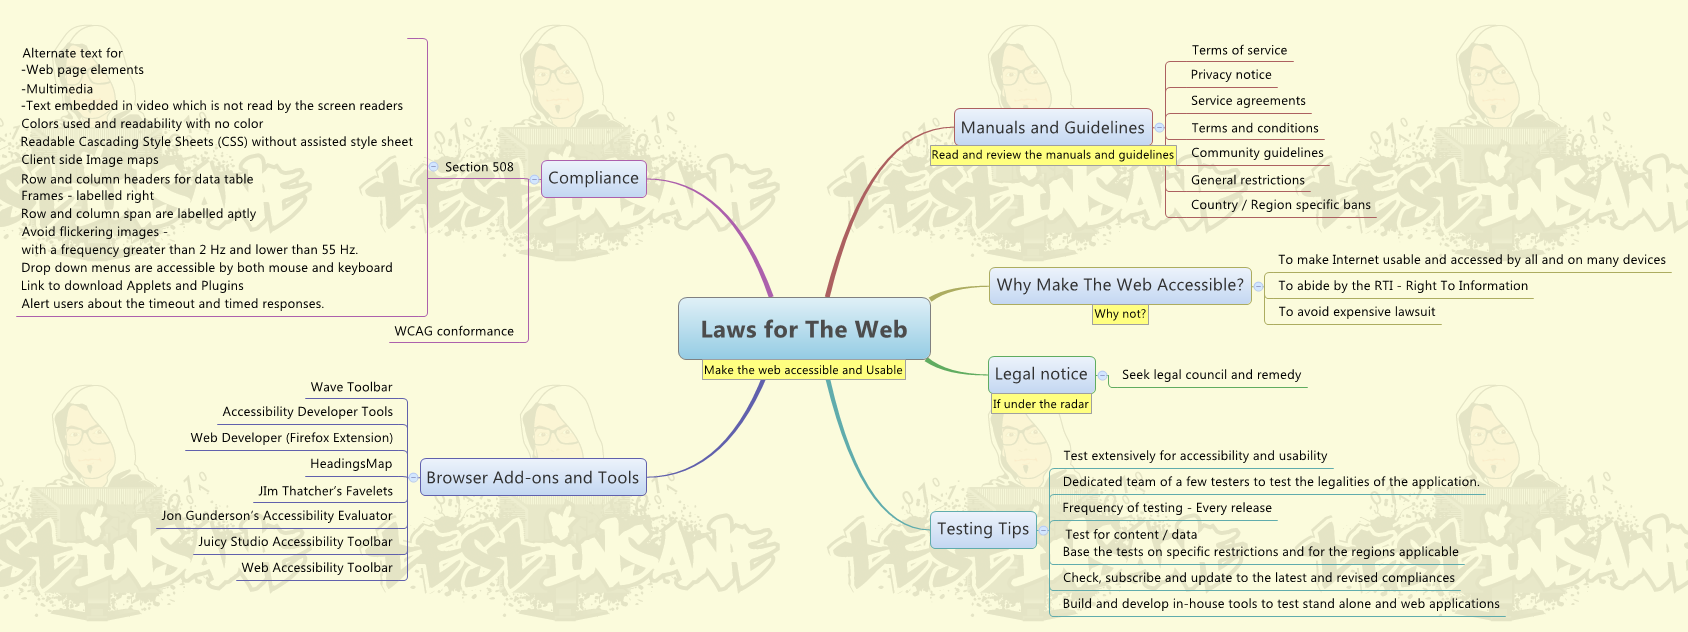 Laws for the web